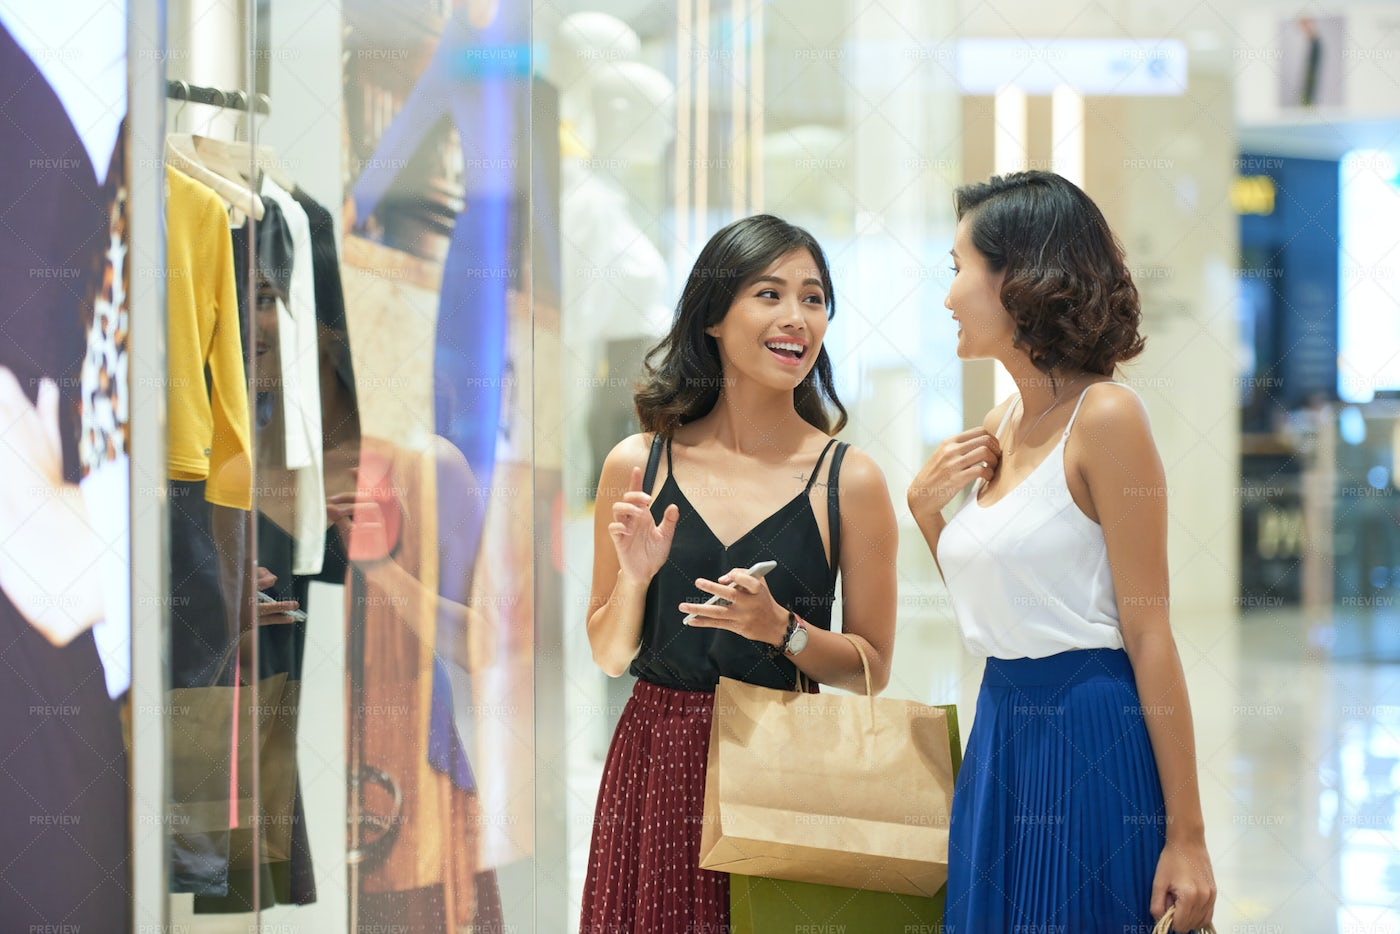 Female Friends In Shopping Mall: Stock Photos